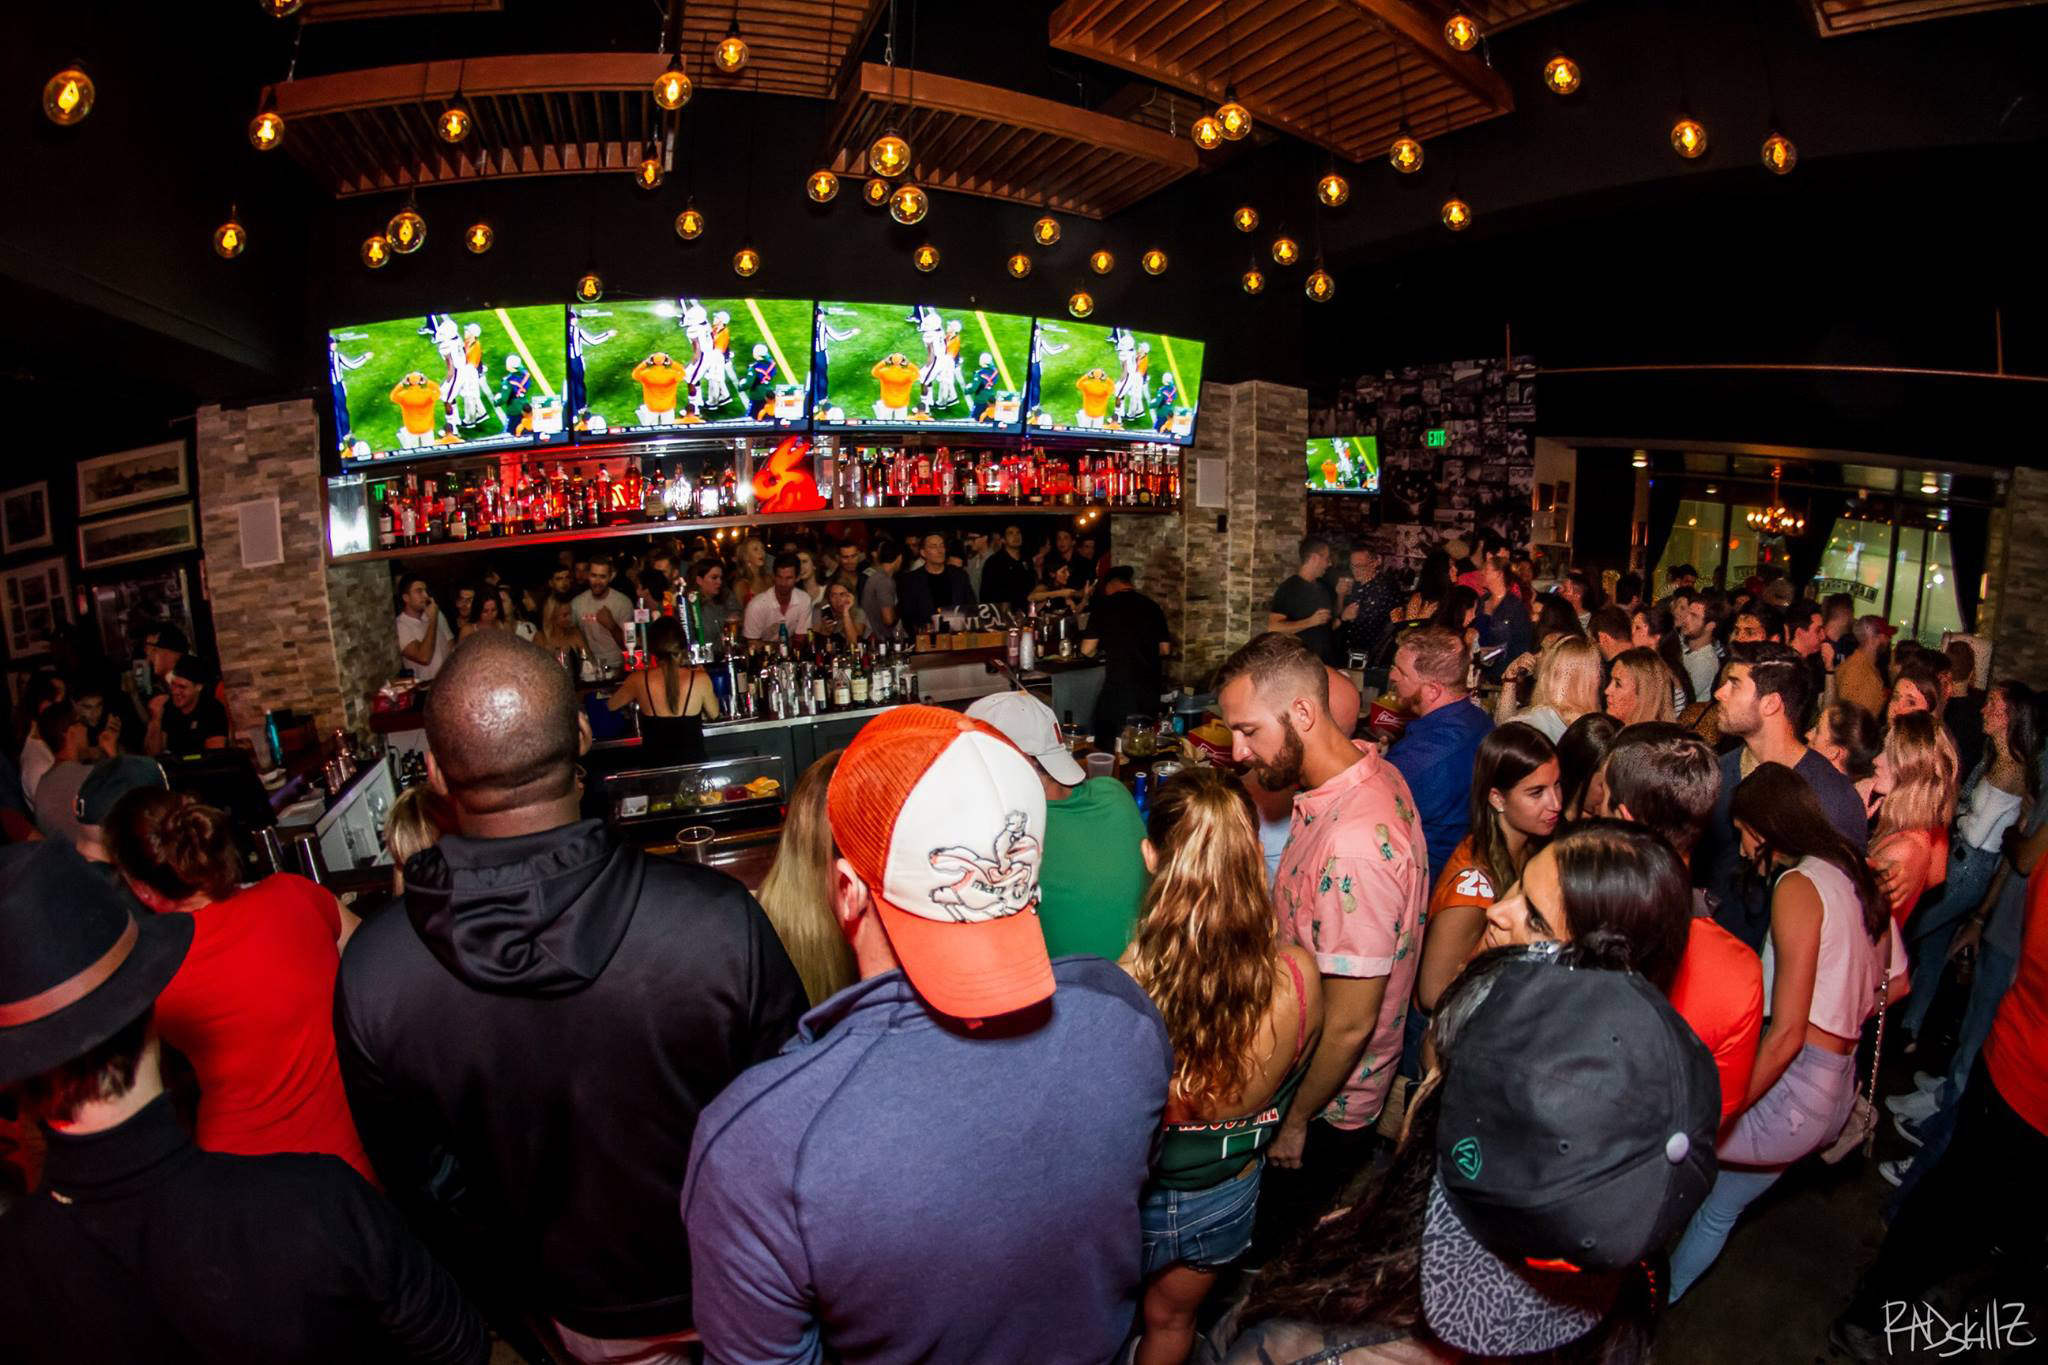 The best sports bars in Miami to root on your team